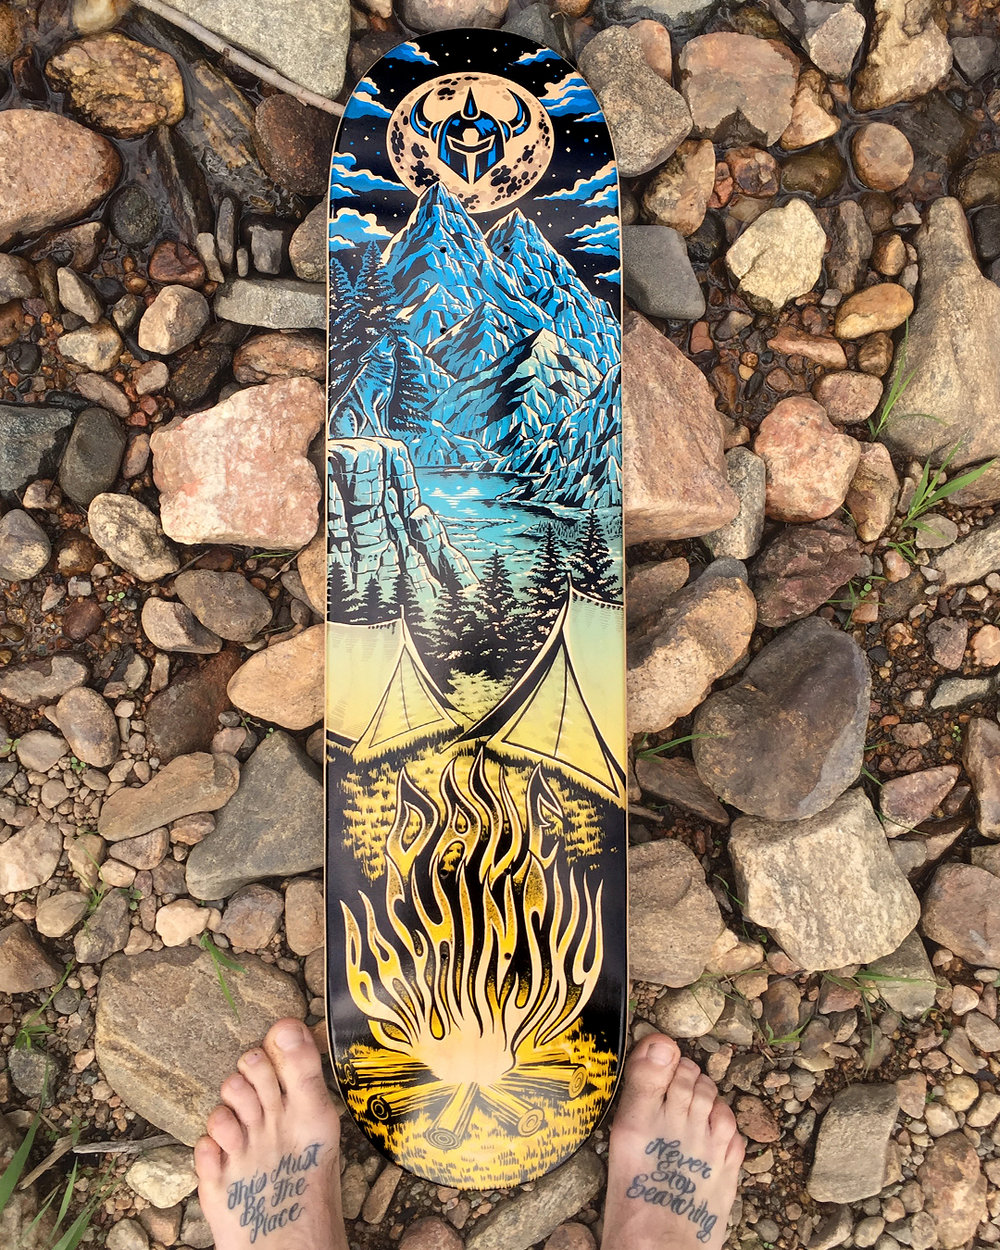 darkstar-skateboards-dave-bachinsky-wildfire-1350.jpg